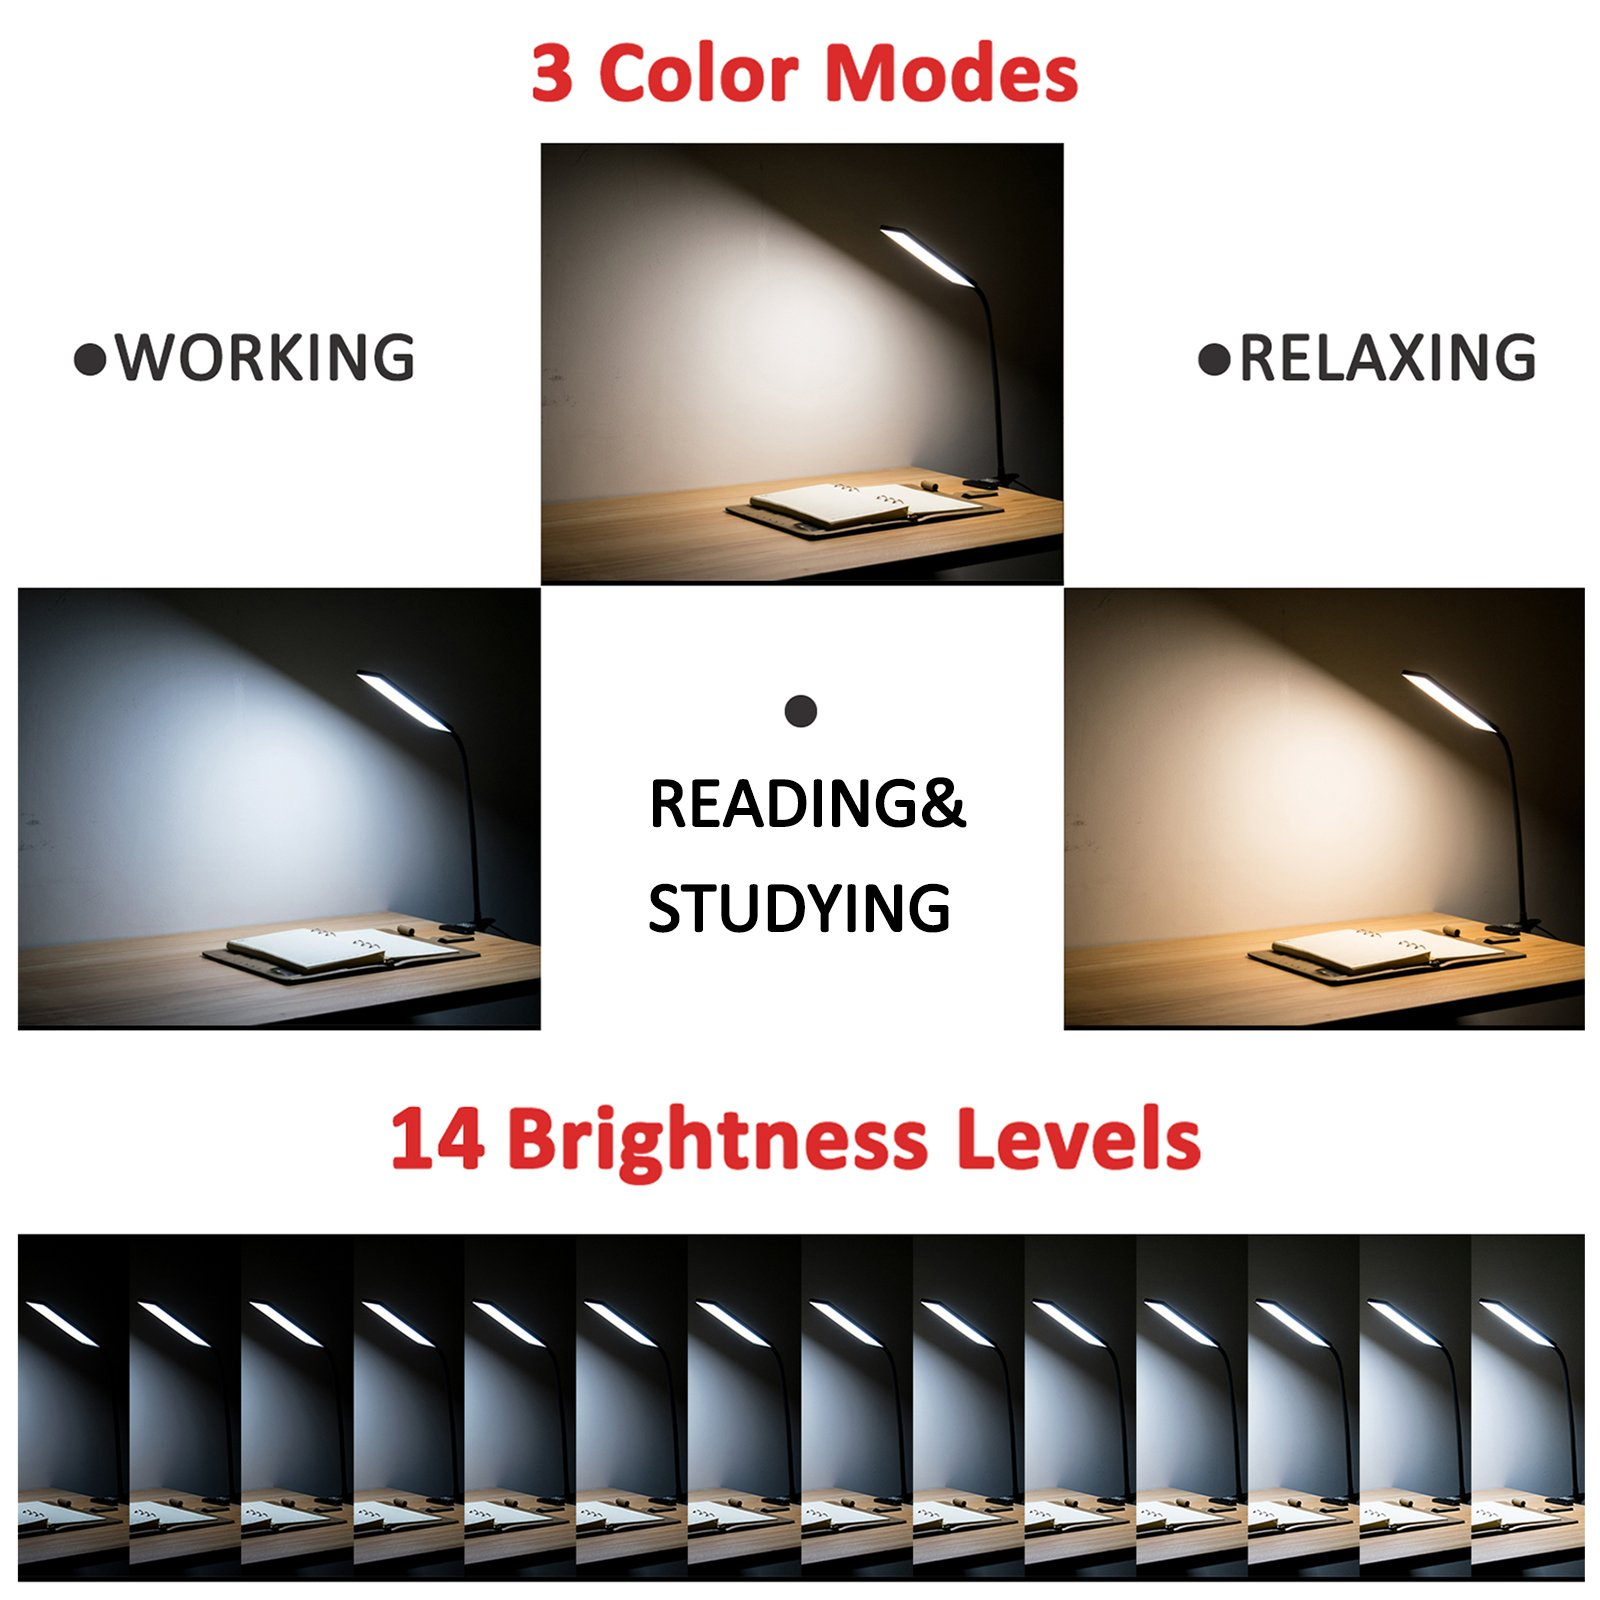 TOPESEL 5W 48 LEDs Dimmable Clip-on Led Desk Lamp, Eye-Care Flexible Gooseneck USB Clamp Reading Lamp, 3 Color Temperature, 14 Brightness Levels Table Lamp, Black by TOPESEL (Image #2)